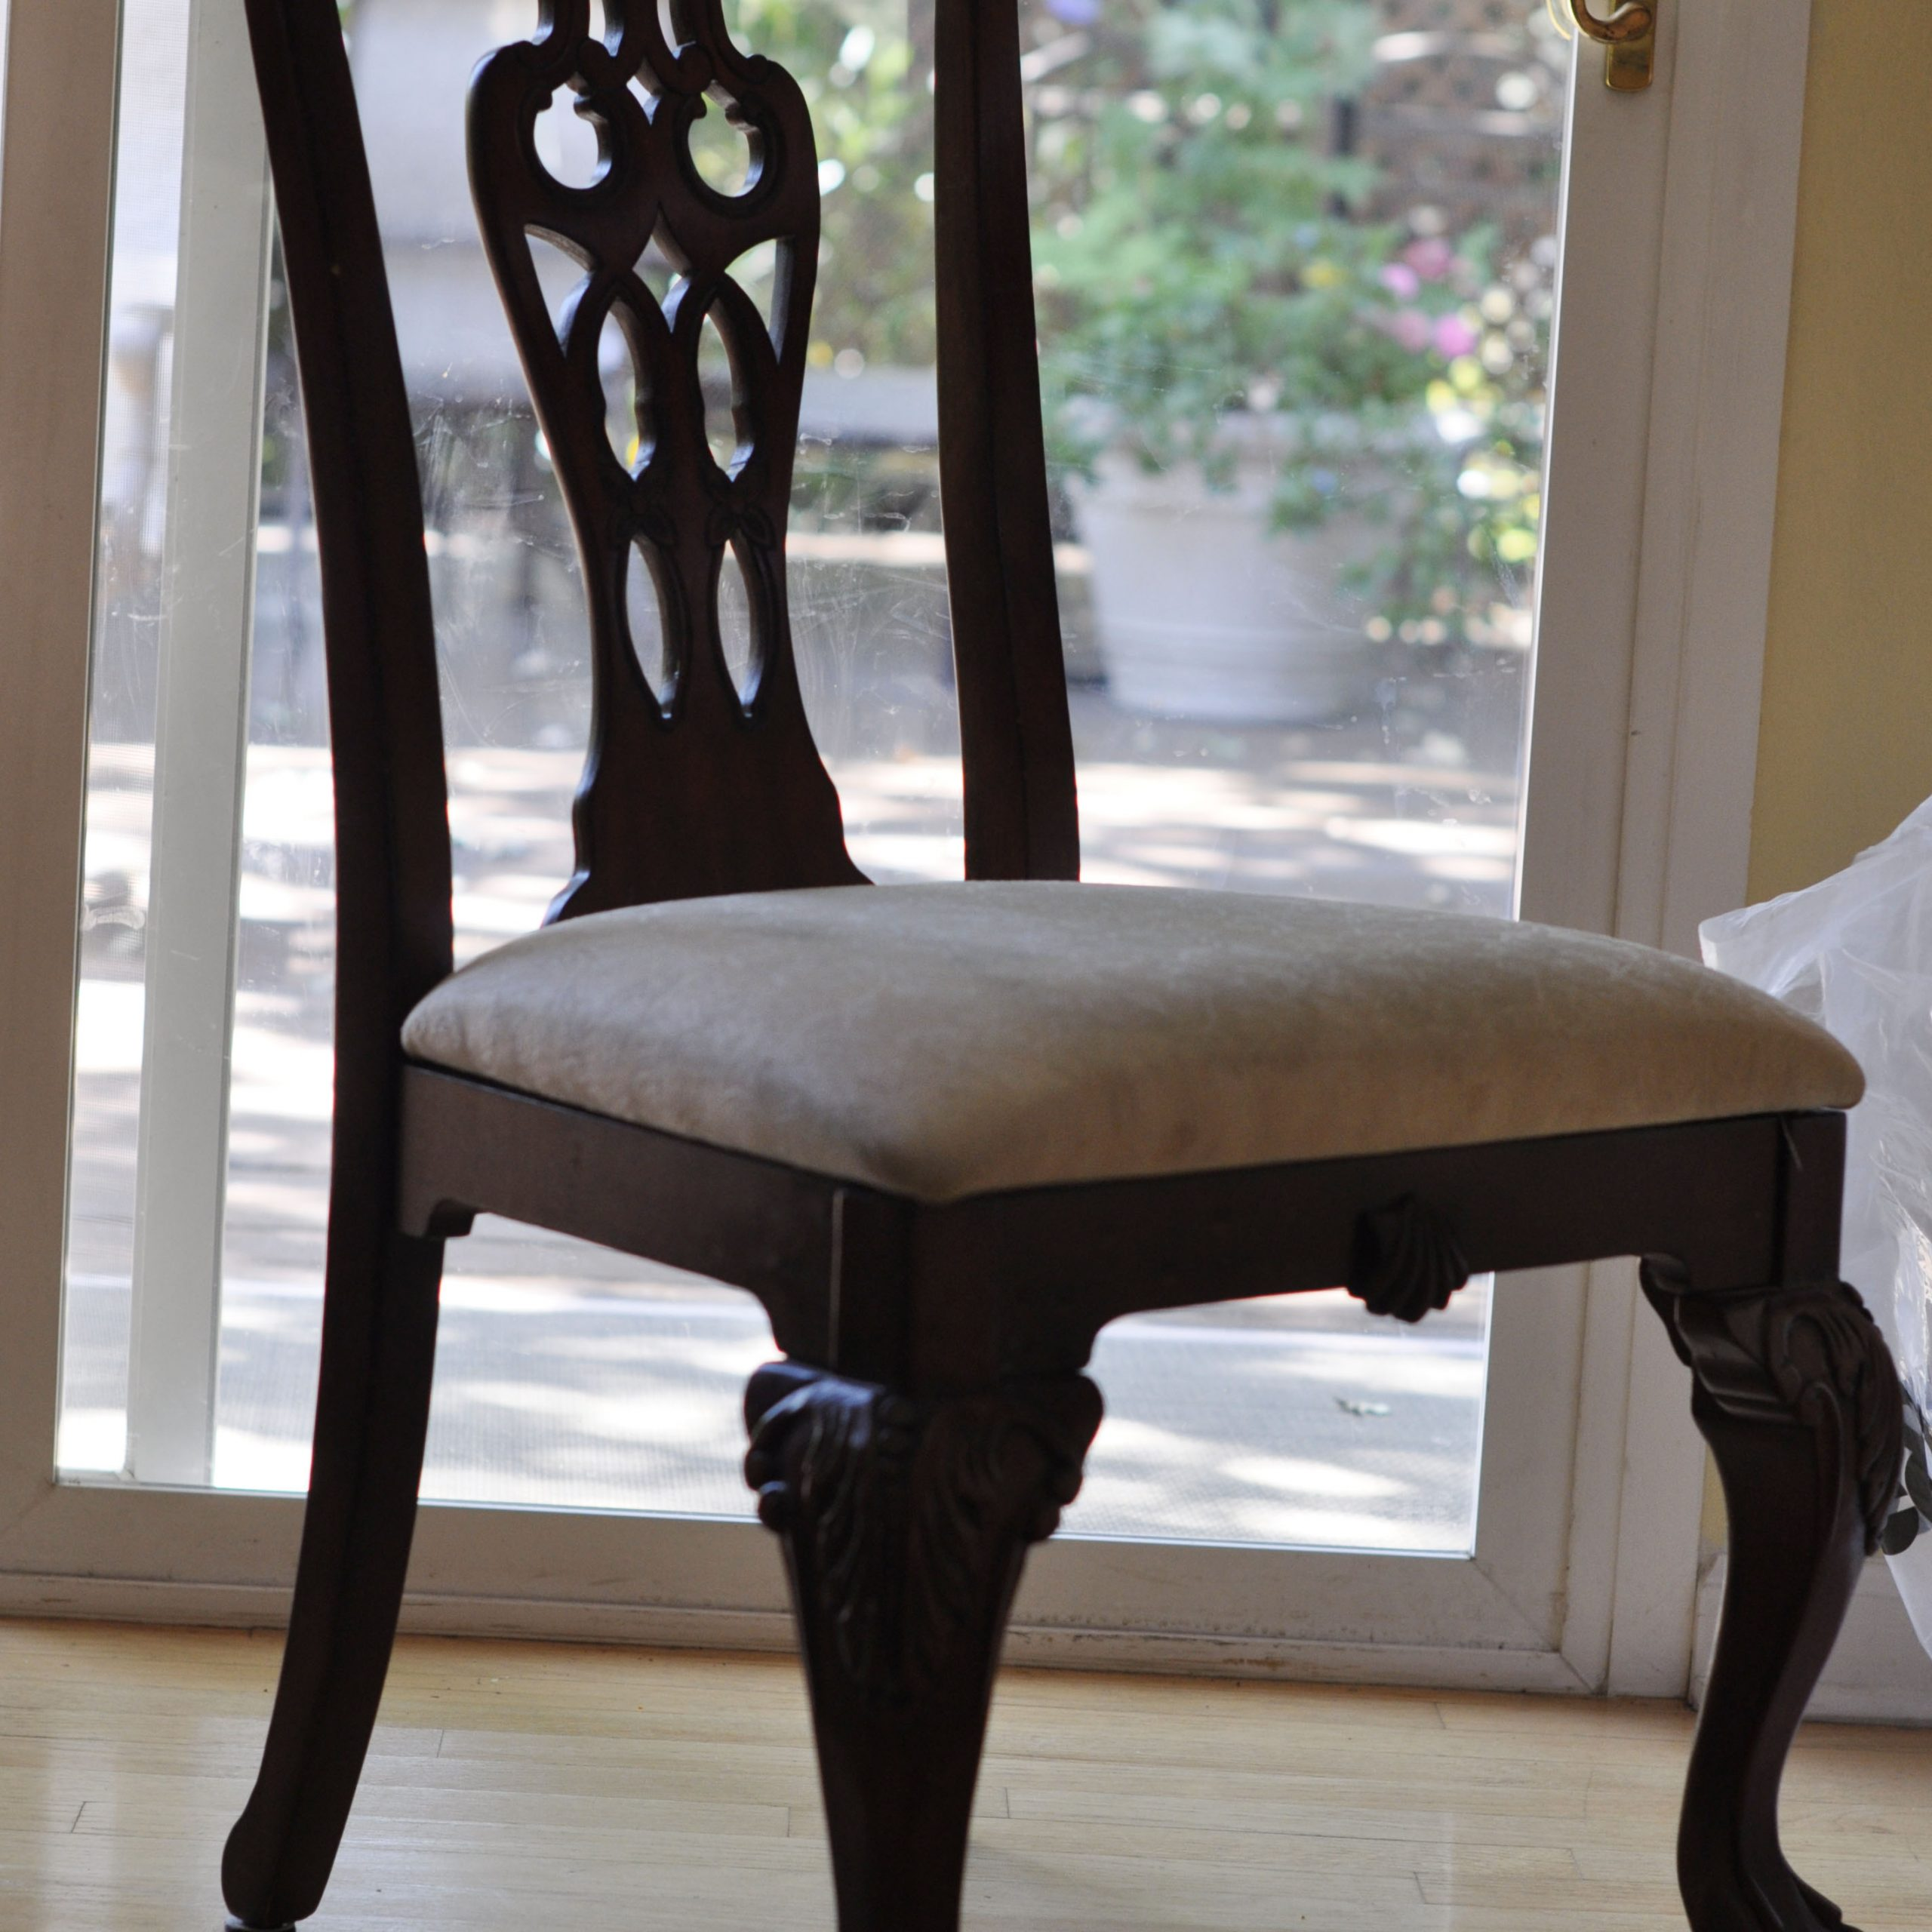 reupholstering dining chairs cost